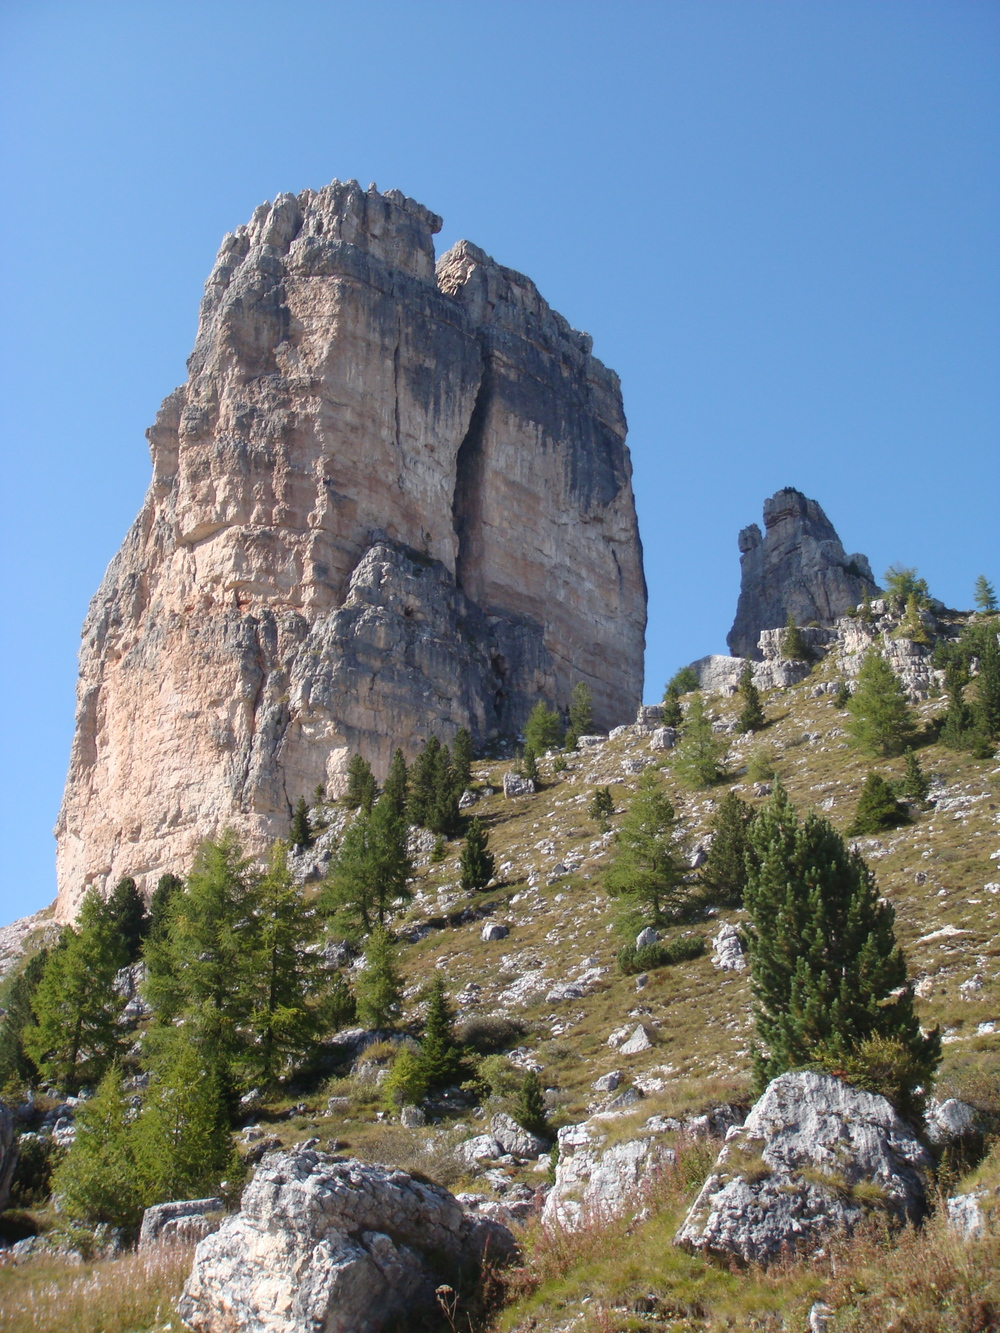 Look closely and you'll surely see climbers on Cinque Torre.